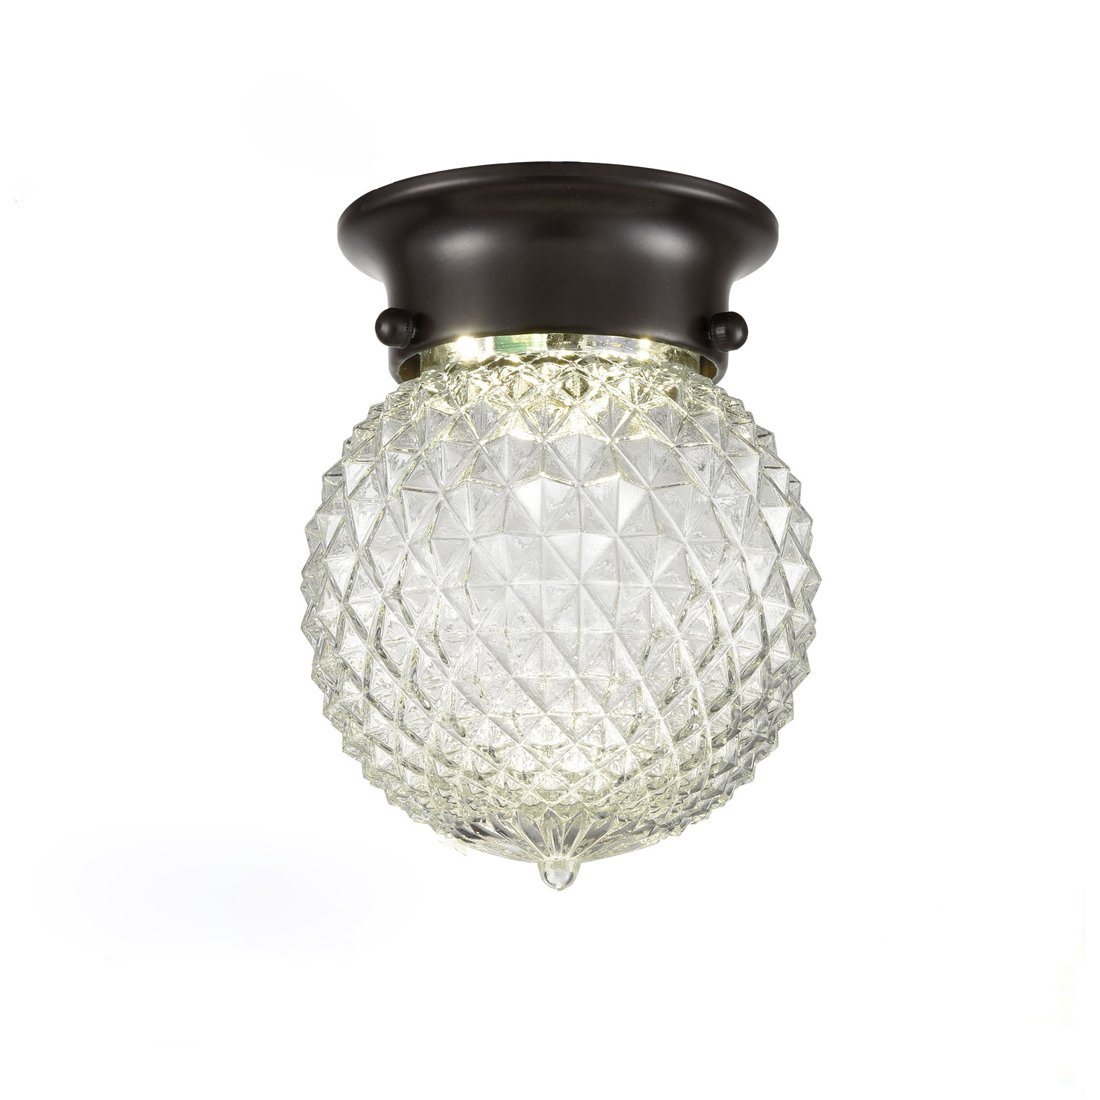 AXILAND Industrial Antique Style Plantation Collection Flush Mount LED Ceiling Light Prismatic Glass Globe Light Fixtures